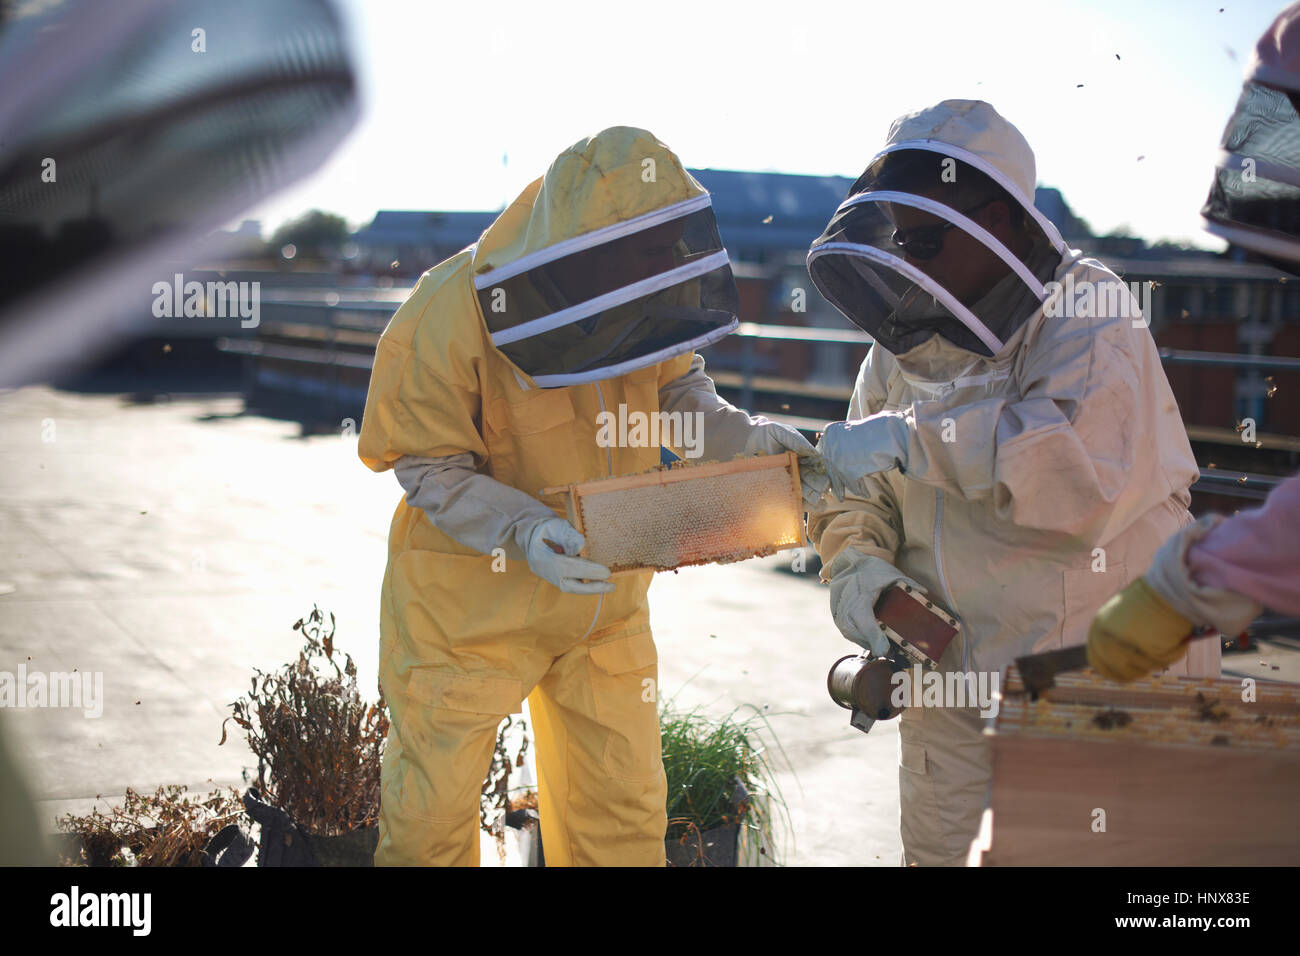 Beekeepers inspecting honeycomb tray on city rooftop - Stock Image